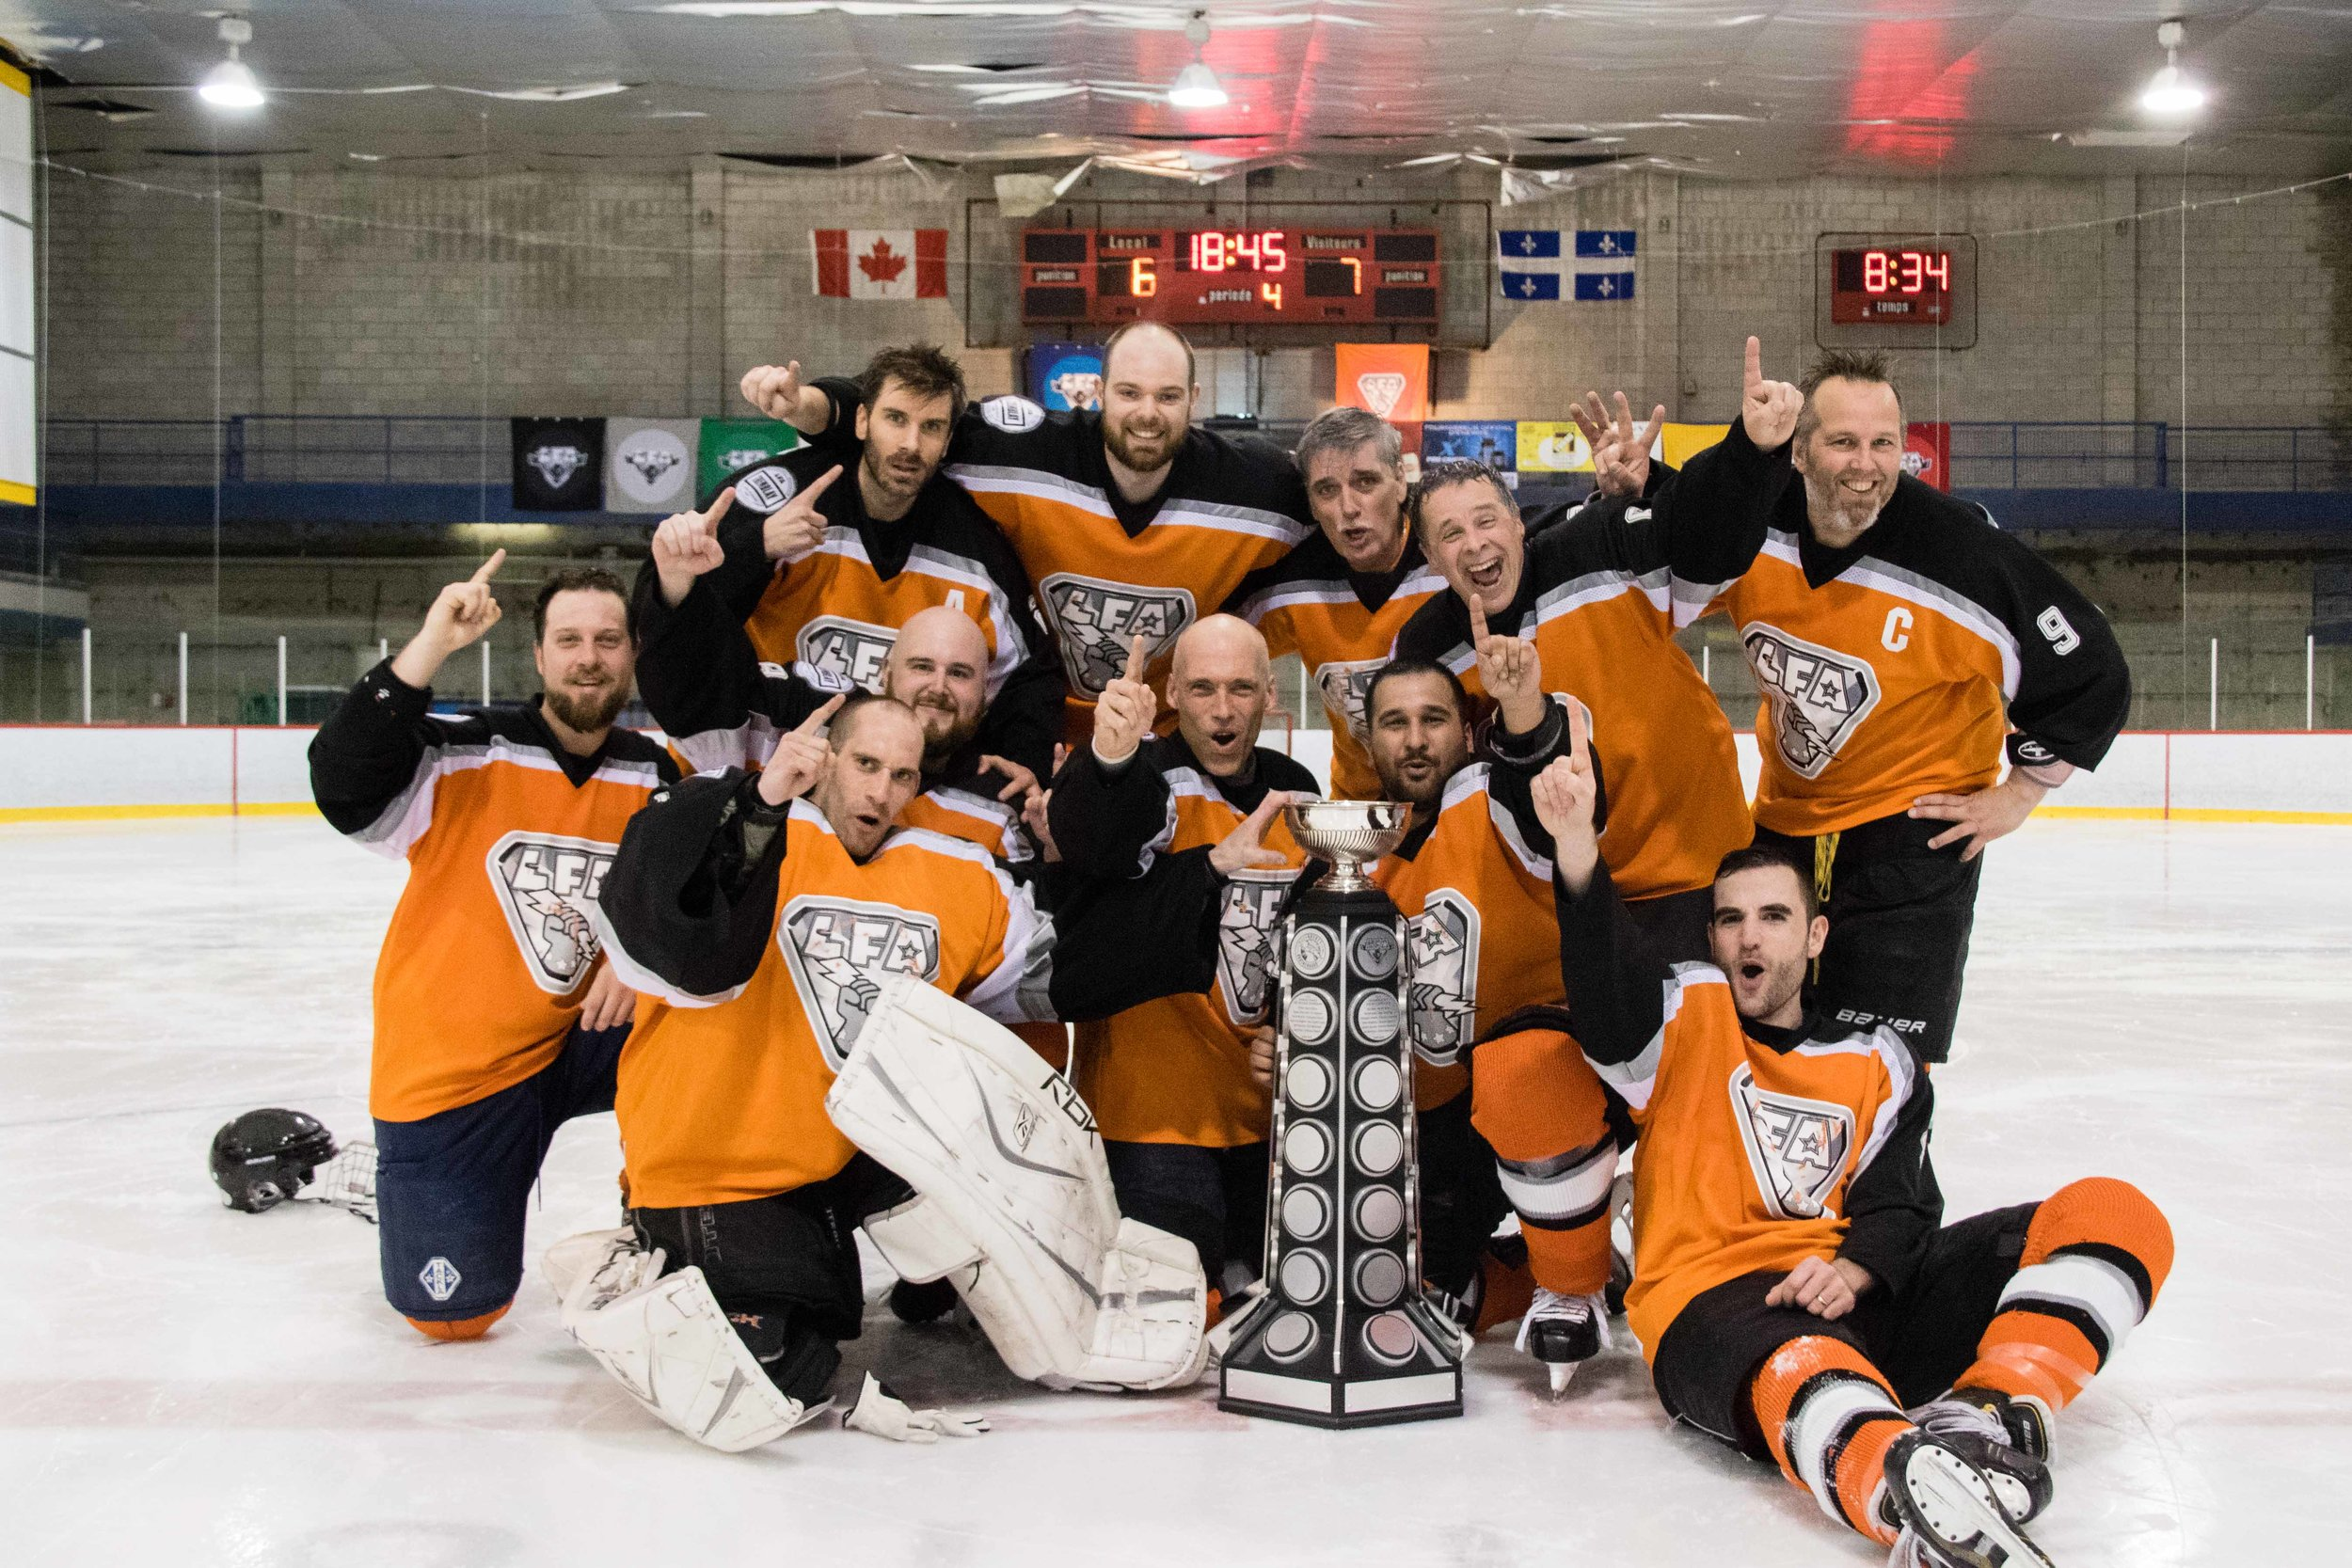 The 2016-2017 edition of the Meteors who came back from behind to clinch the spring championship in a very entertaining game. (photo Joseph Fleming)